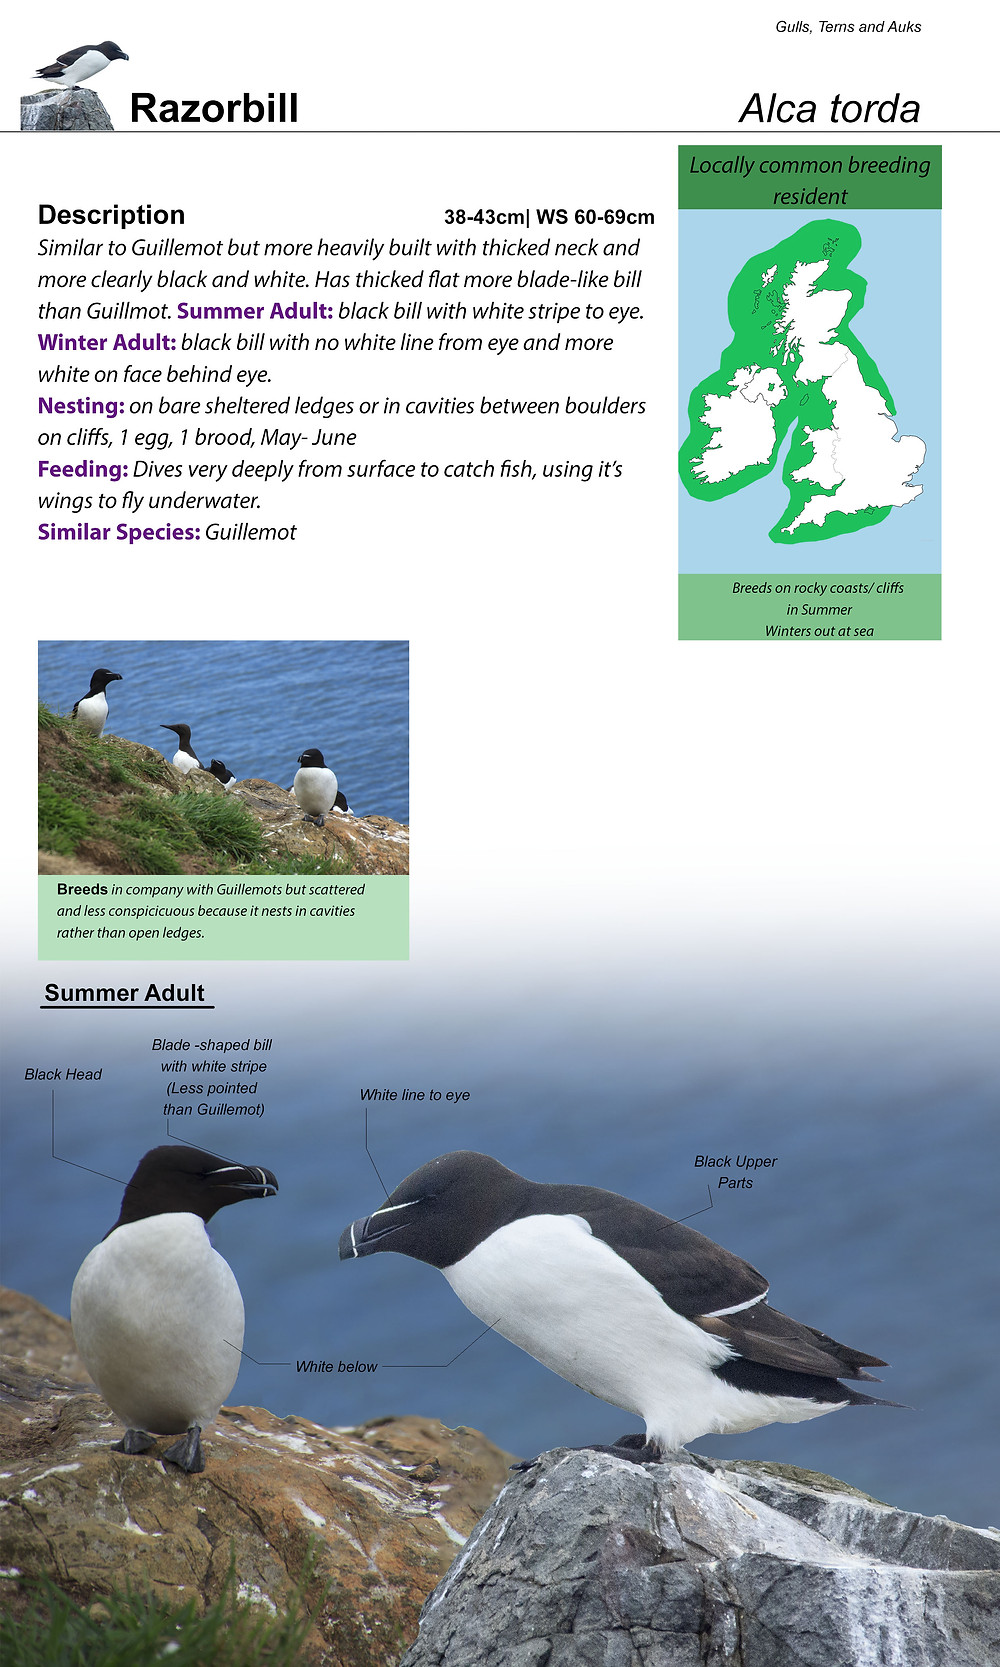 Razorbill page on Naturebook